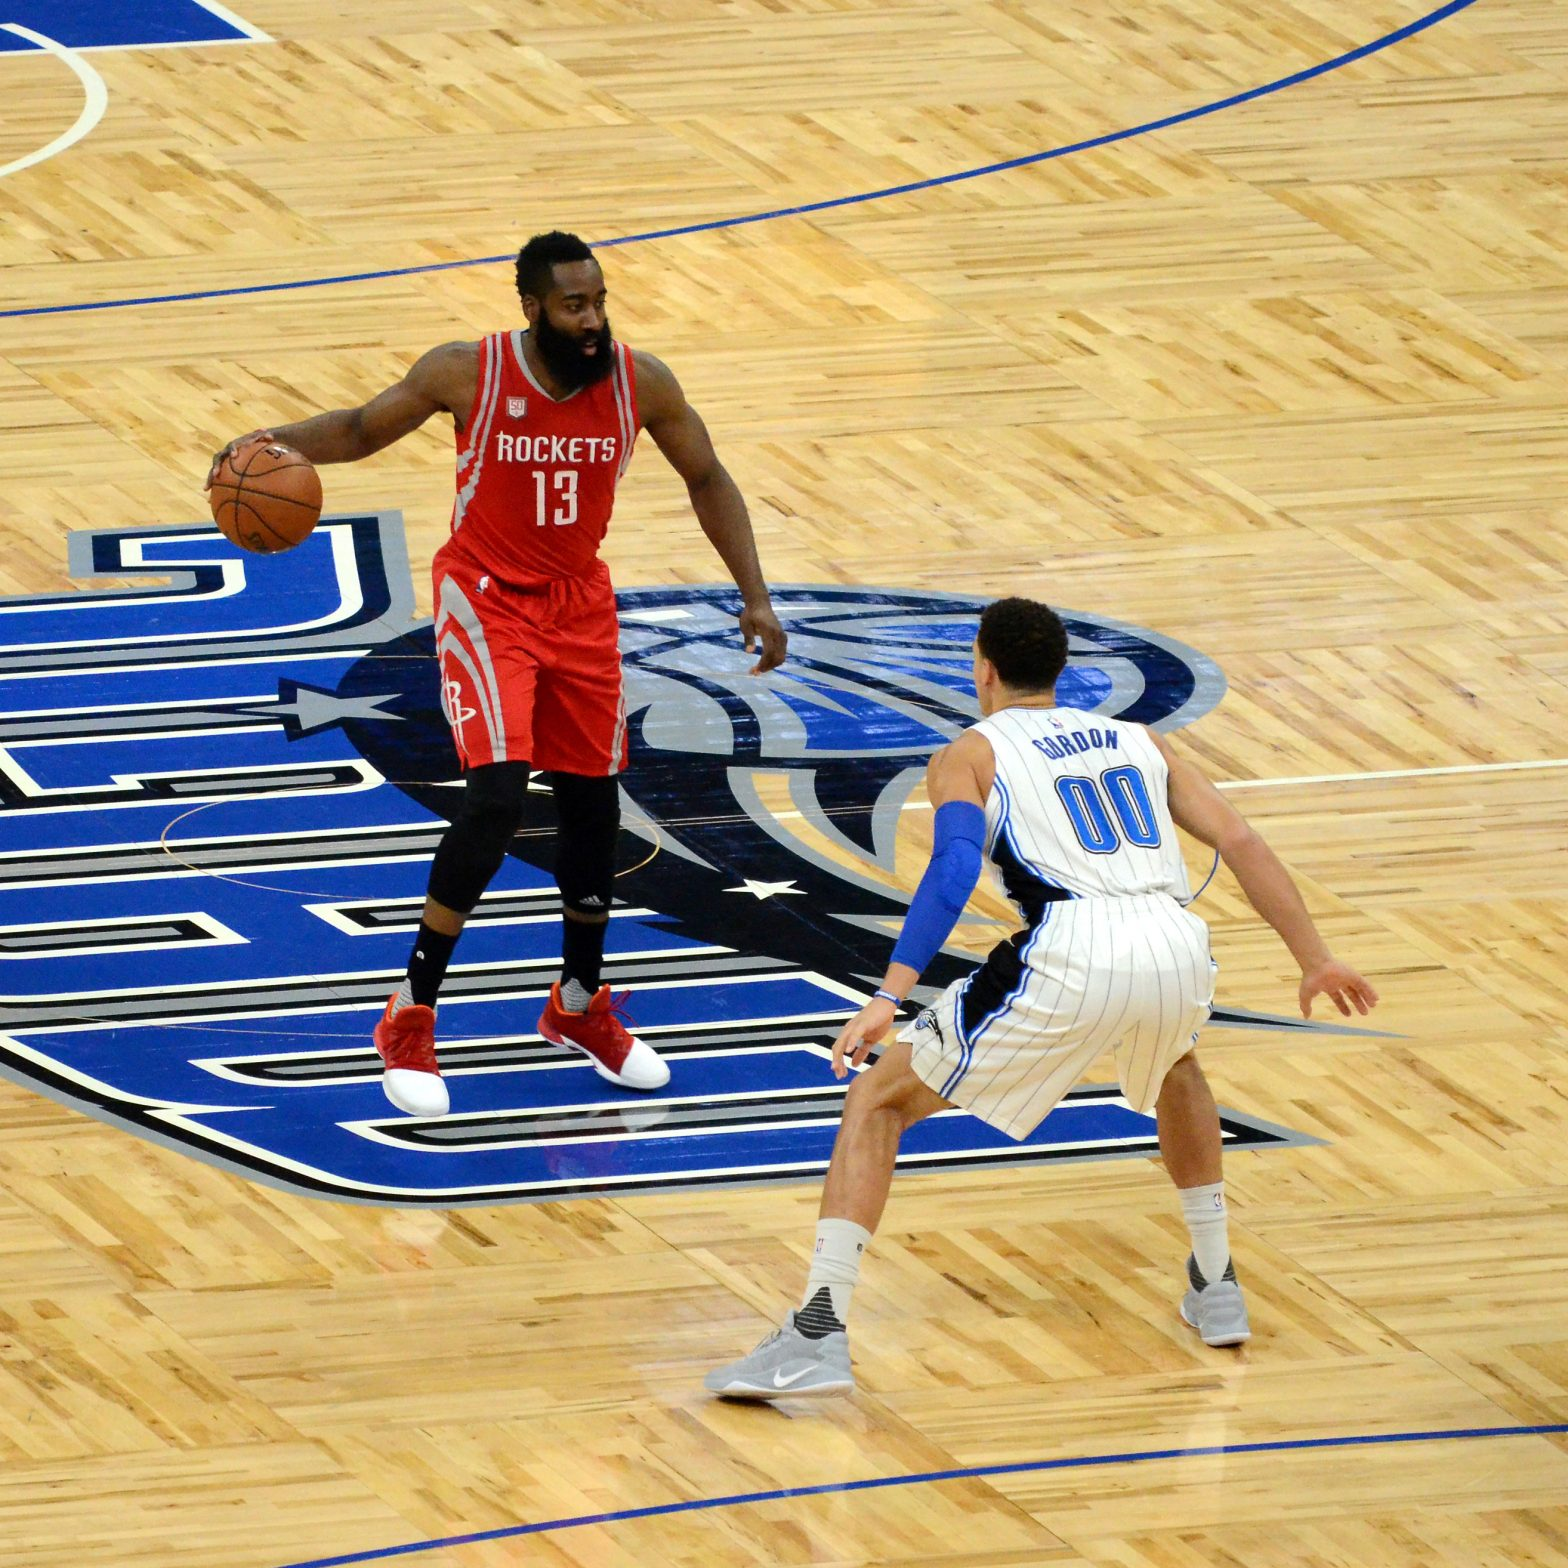 """Jose Garcia from Orlando FL, USA (https://commons.wikimedia.org/wiki/File:James_Harden_And_Aaron_Gordon_(31811616060).jpg), """"James Harden And Aaron Gordon (31811616060)"""", https://creativecommons.org/licenses/by/2.0/legalcode"""